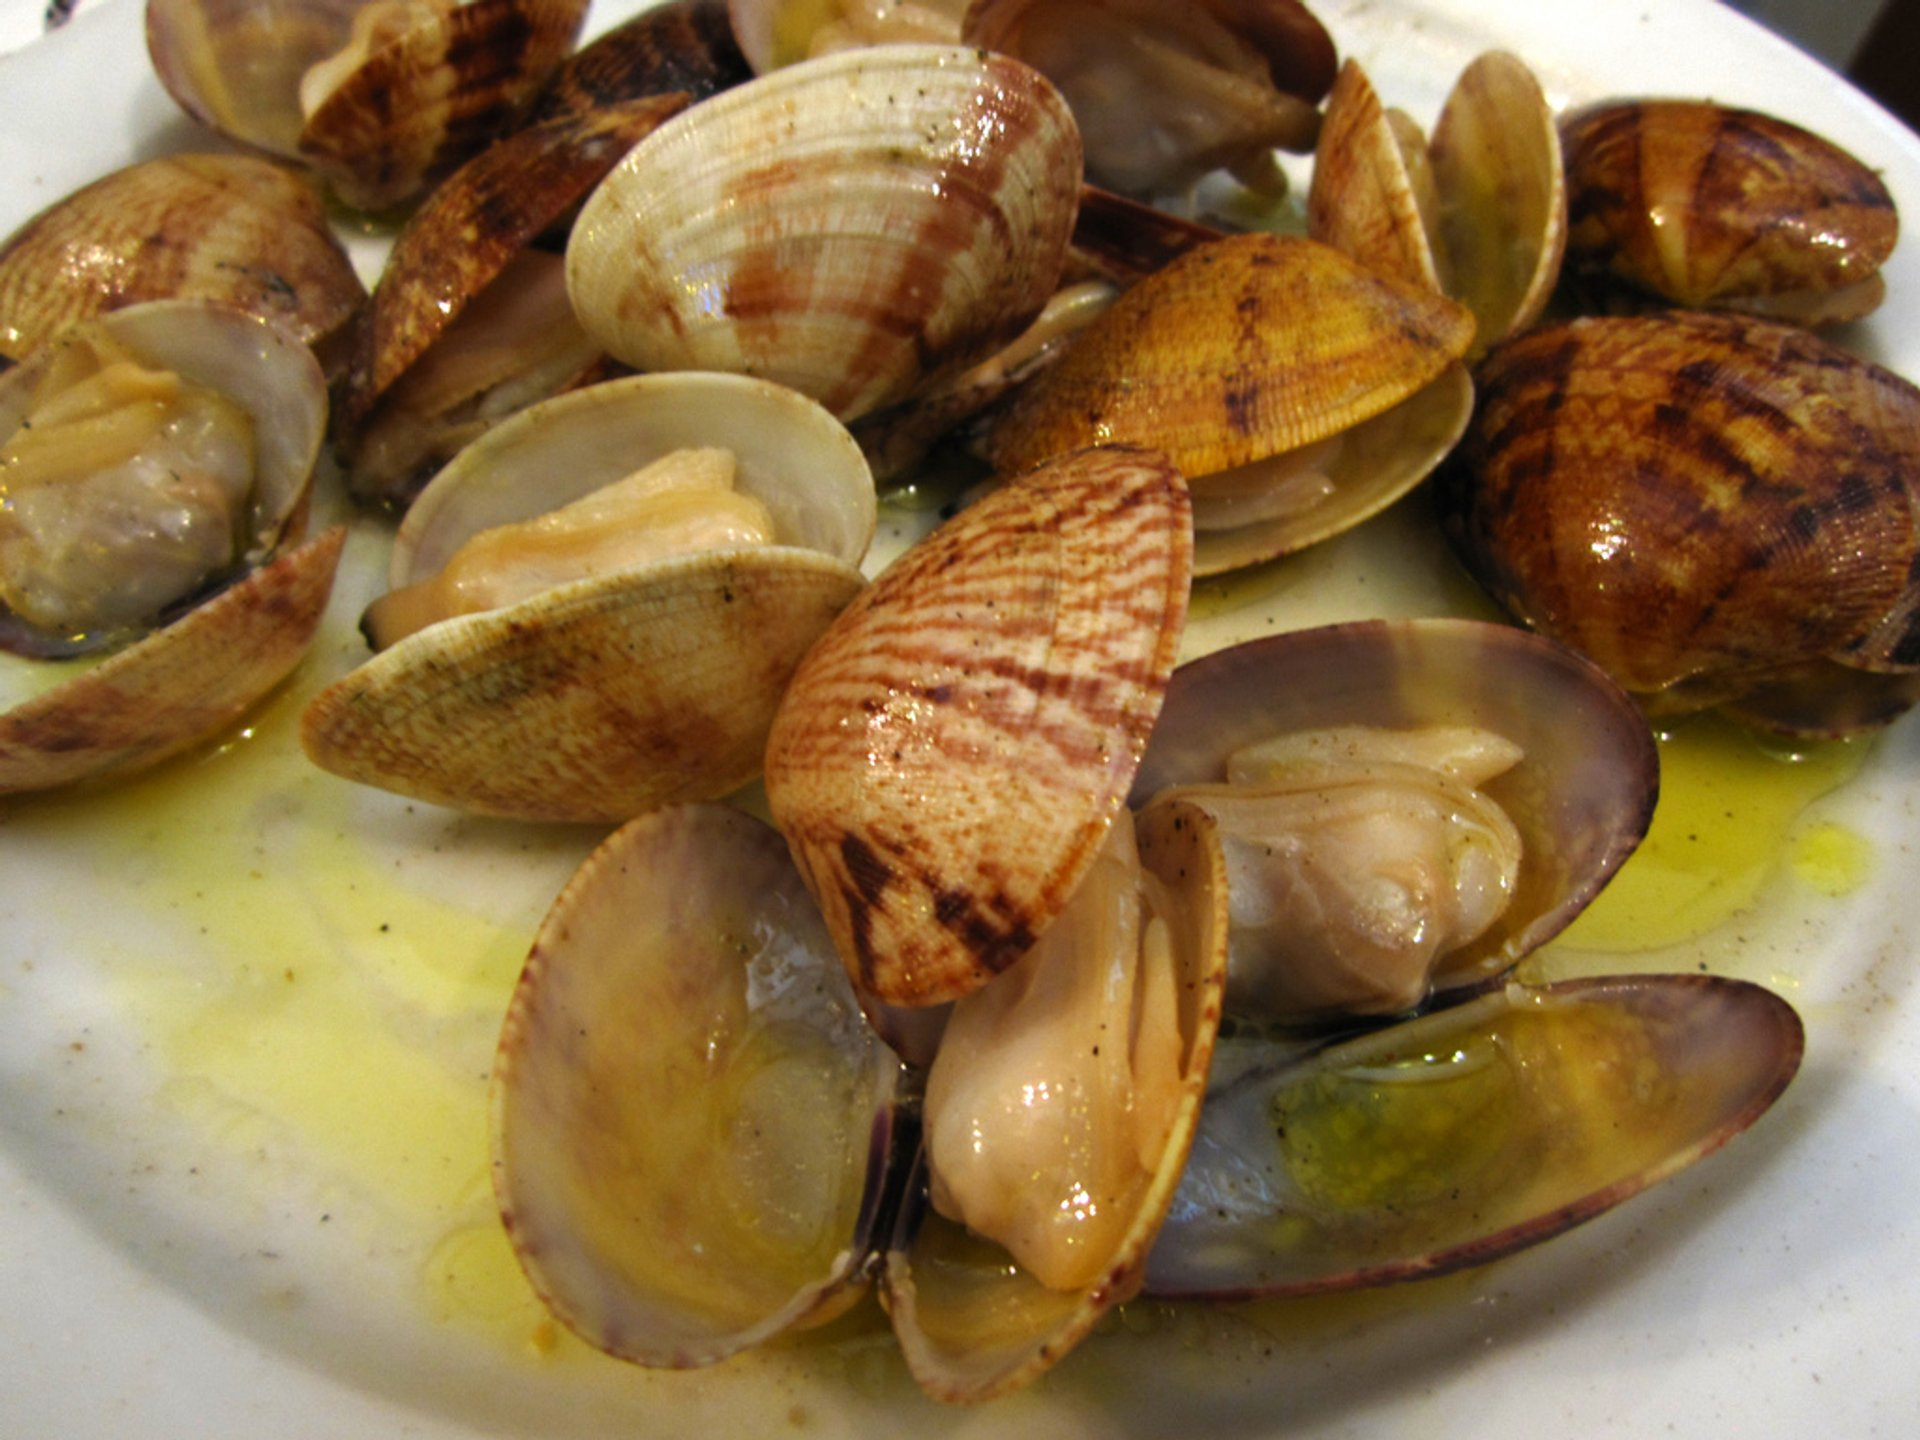 Clams in New Zealand - Best Season 2020